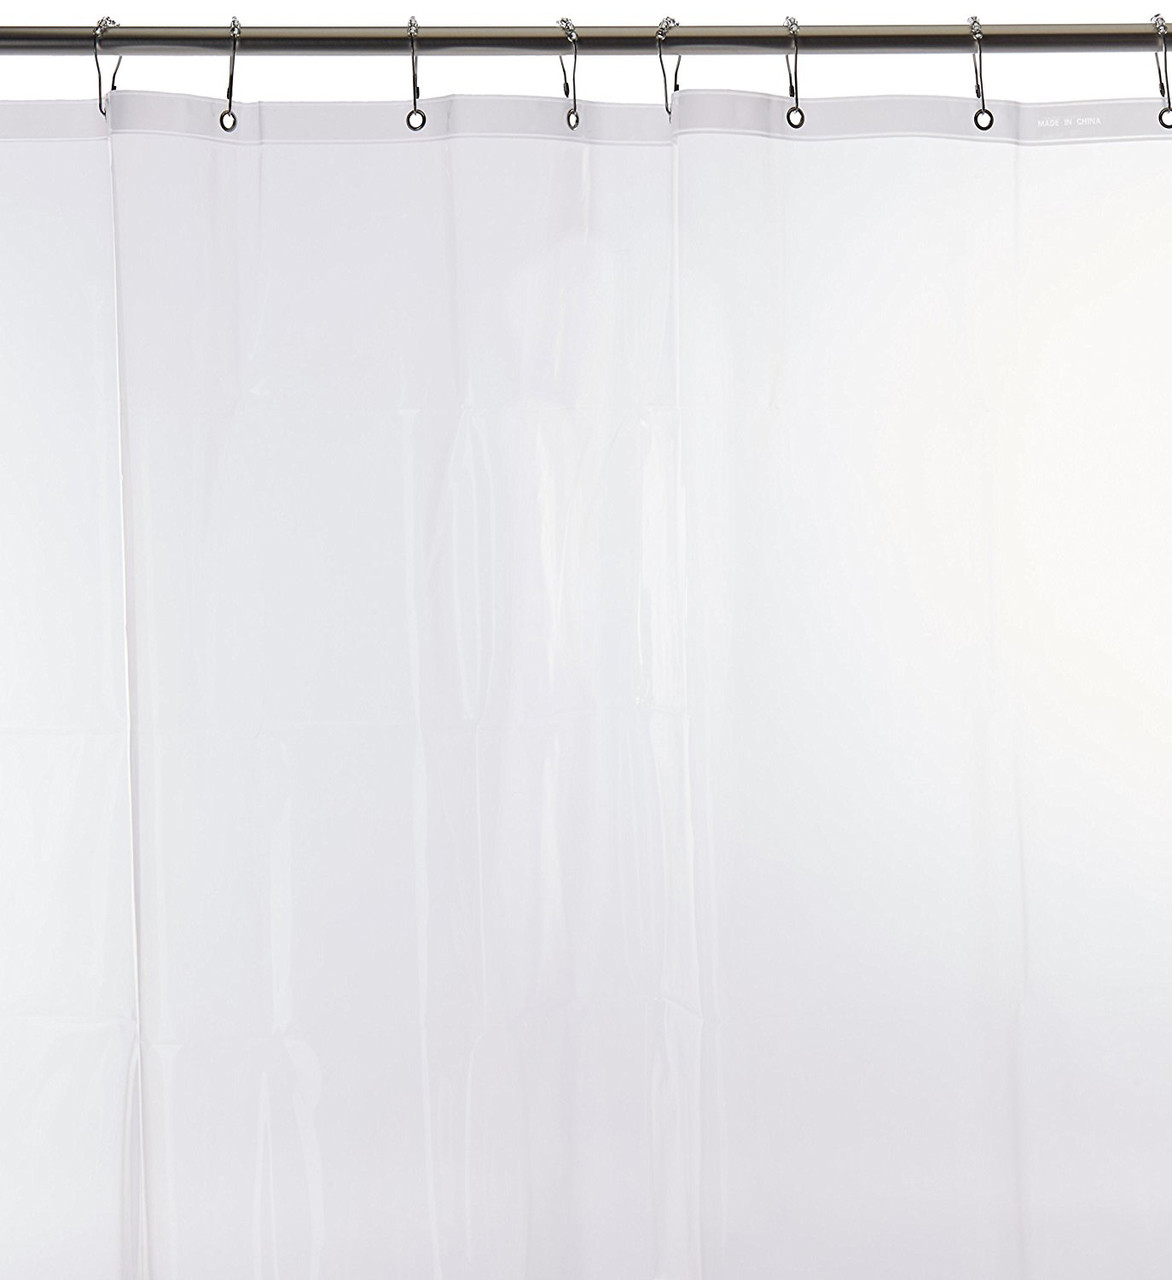 Carnation Home Fashions PEVA Shower Curtain Liners 72 Inch By